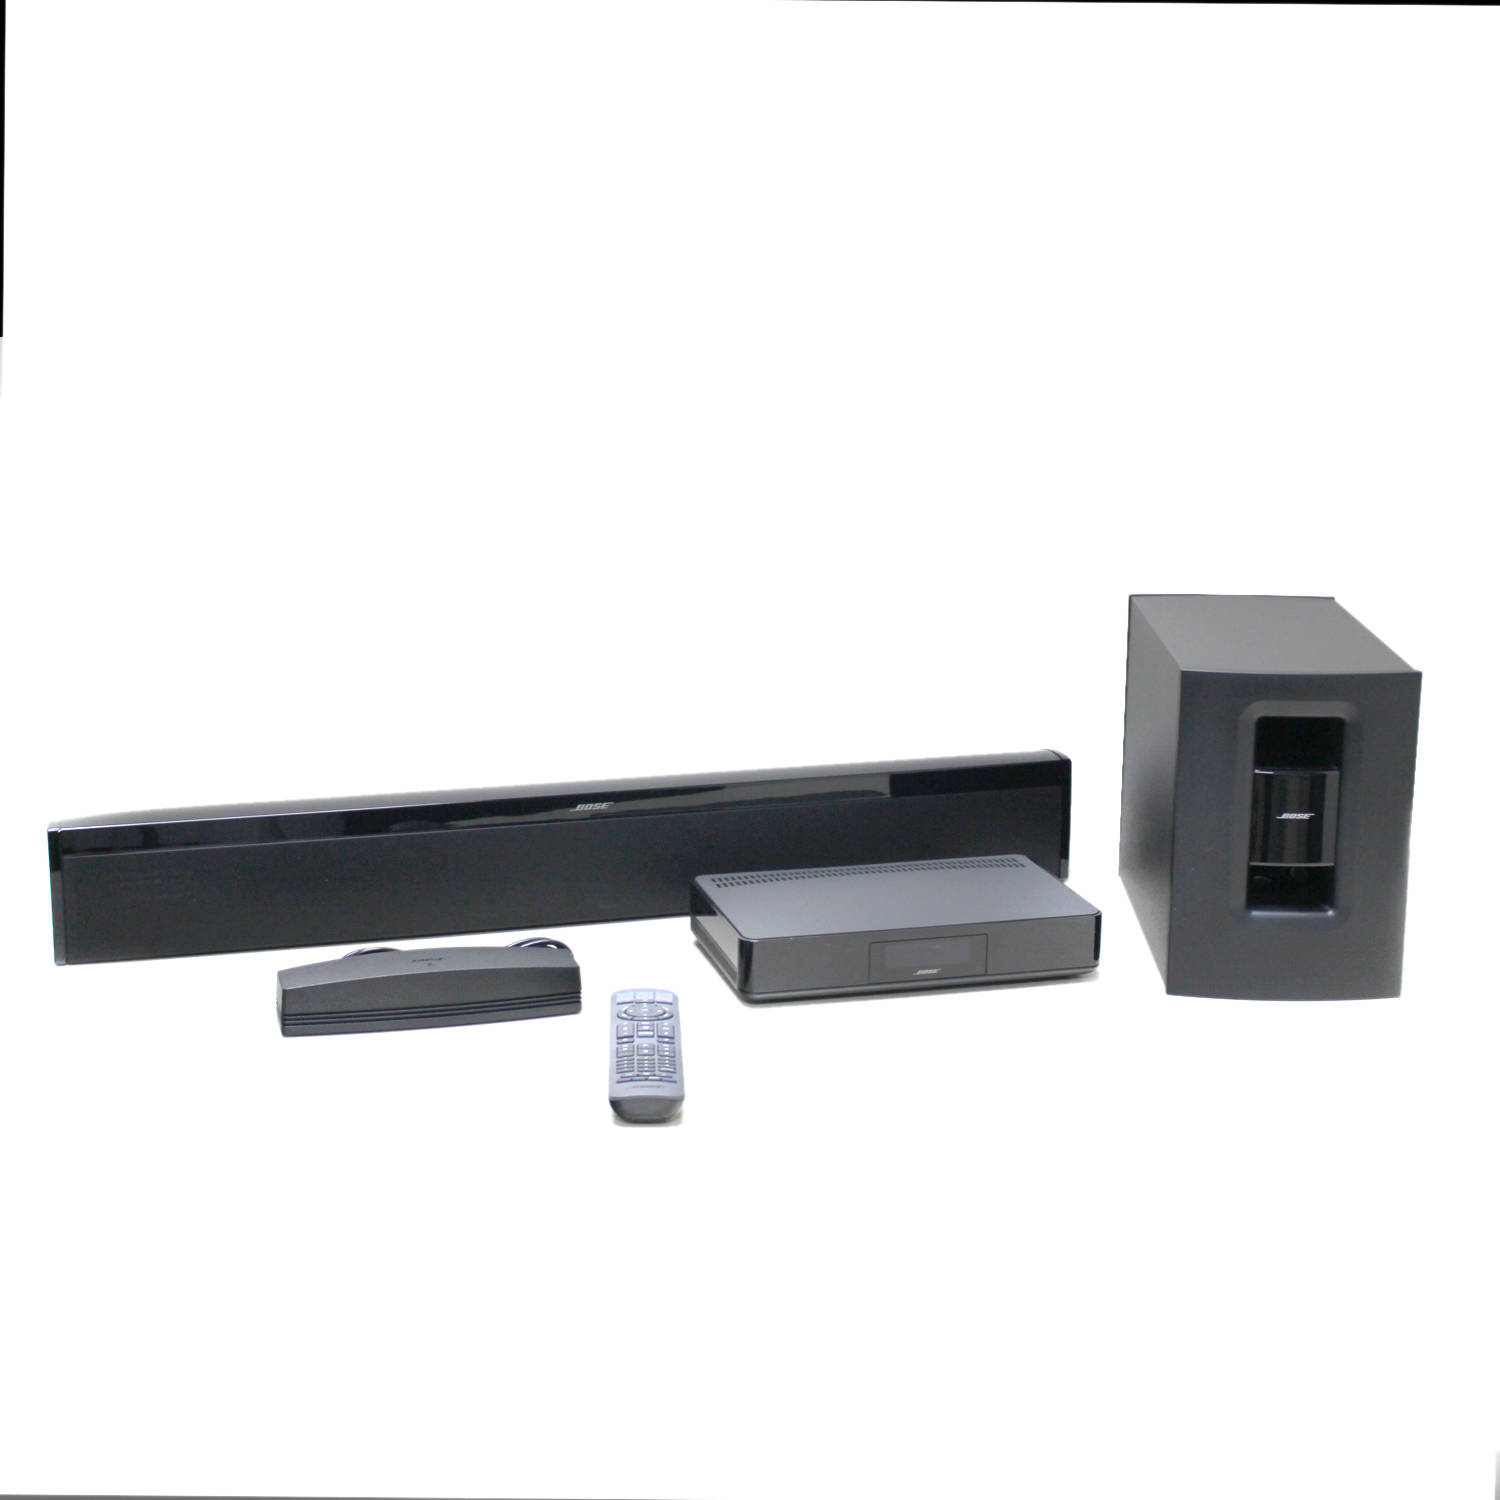 Bose soundtouch 130 home theater system black 738484 1100 b amp h - Bose Soundtouch 130 Home Theater System Black 738484 1100 B Amp H 3